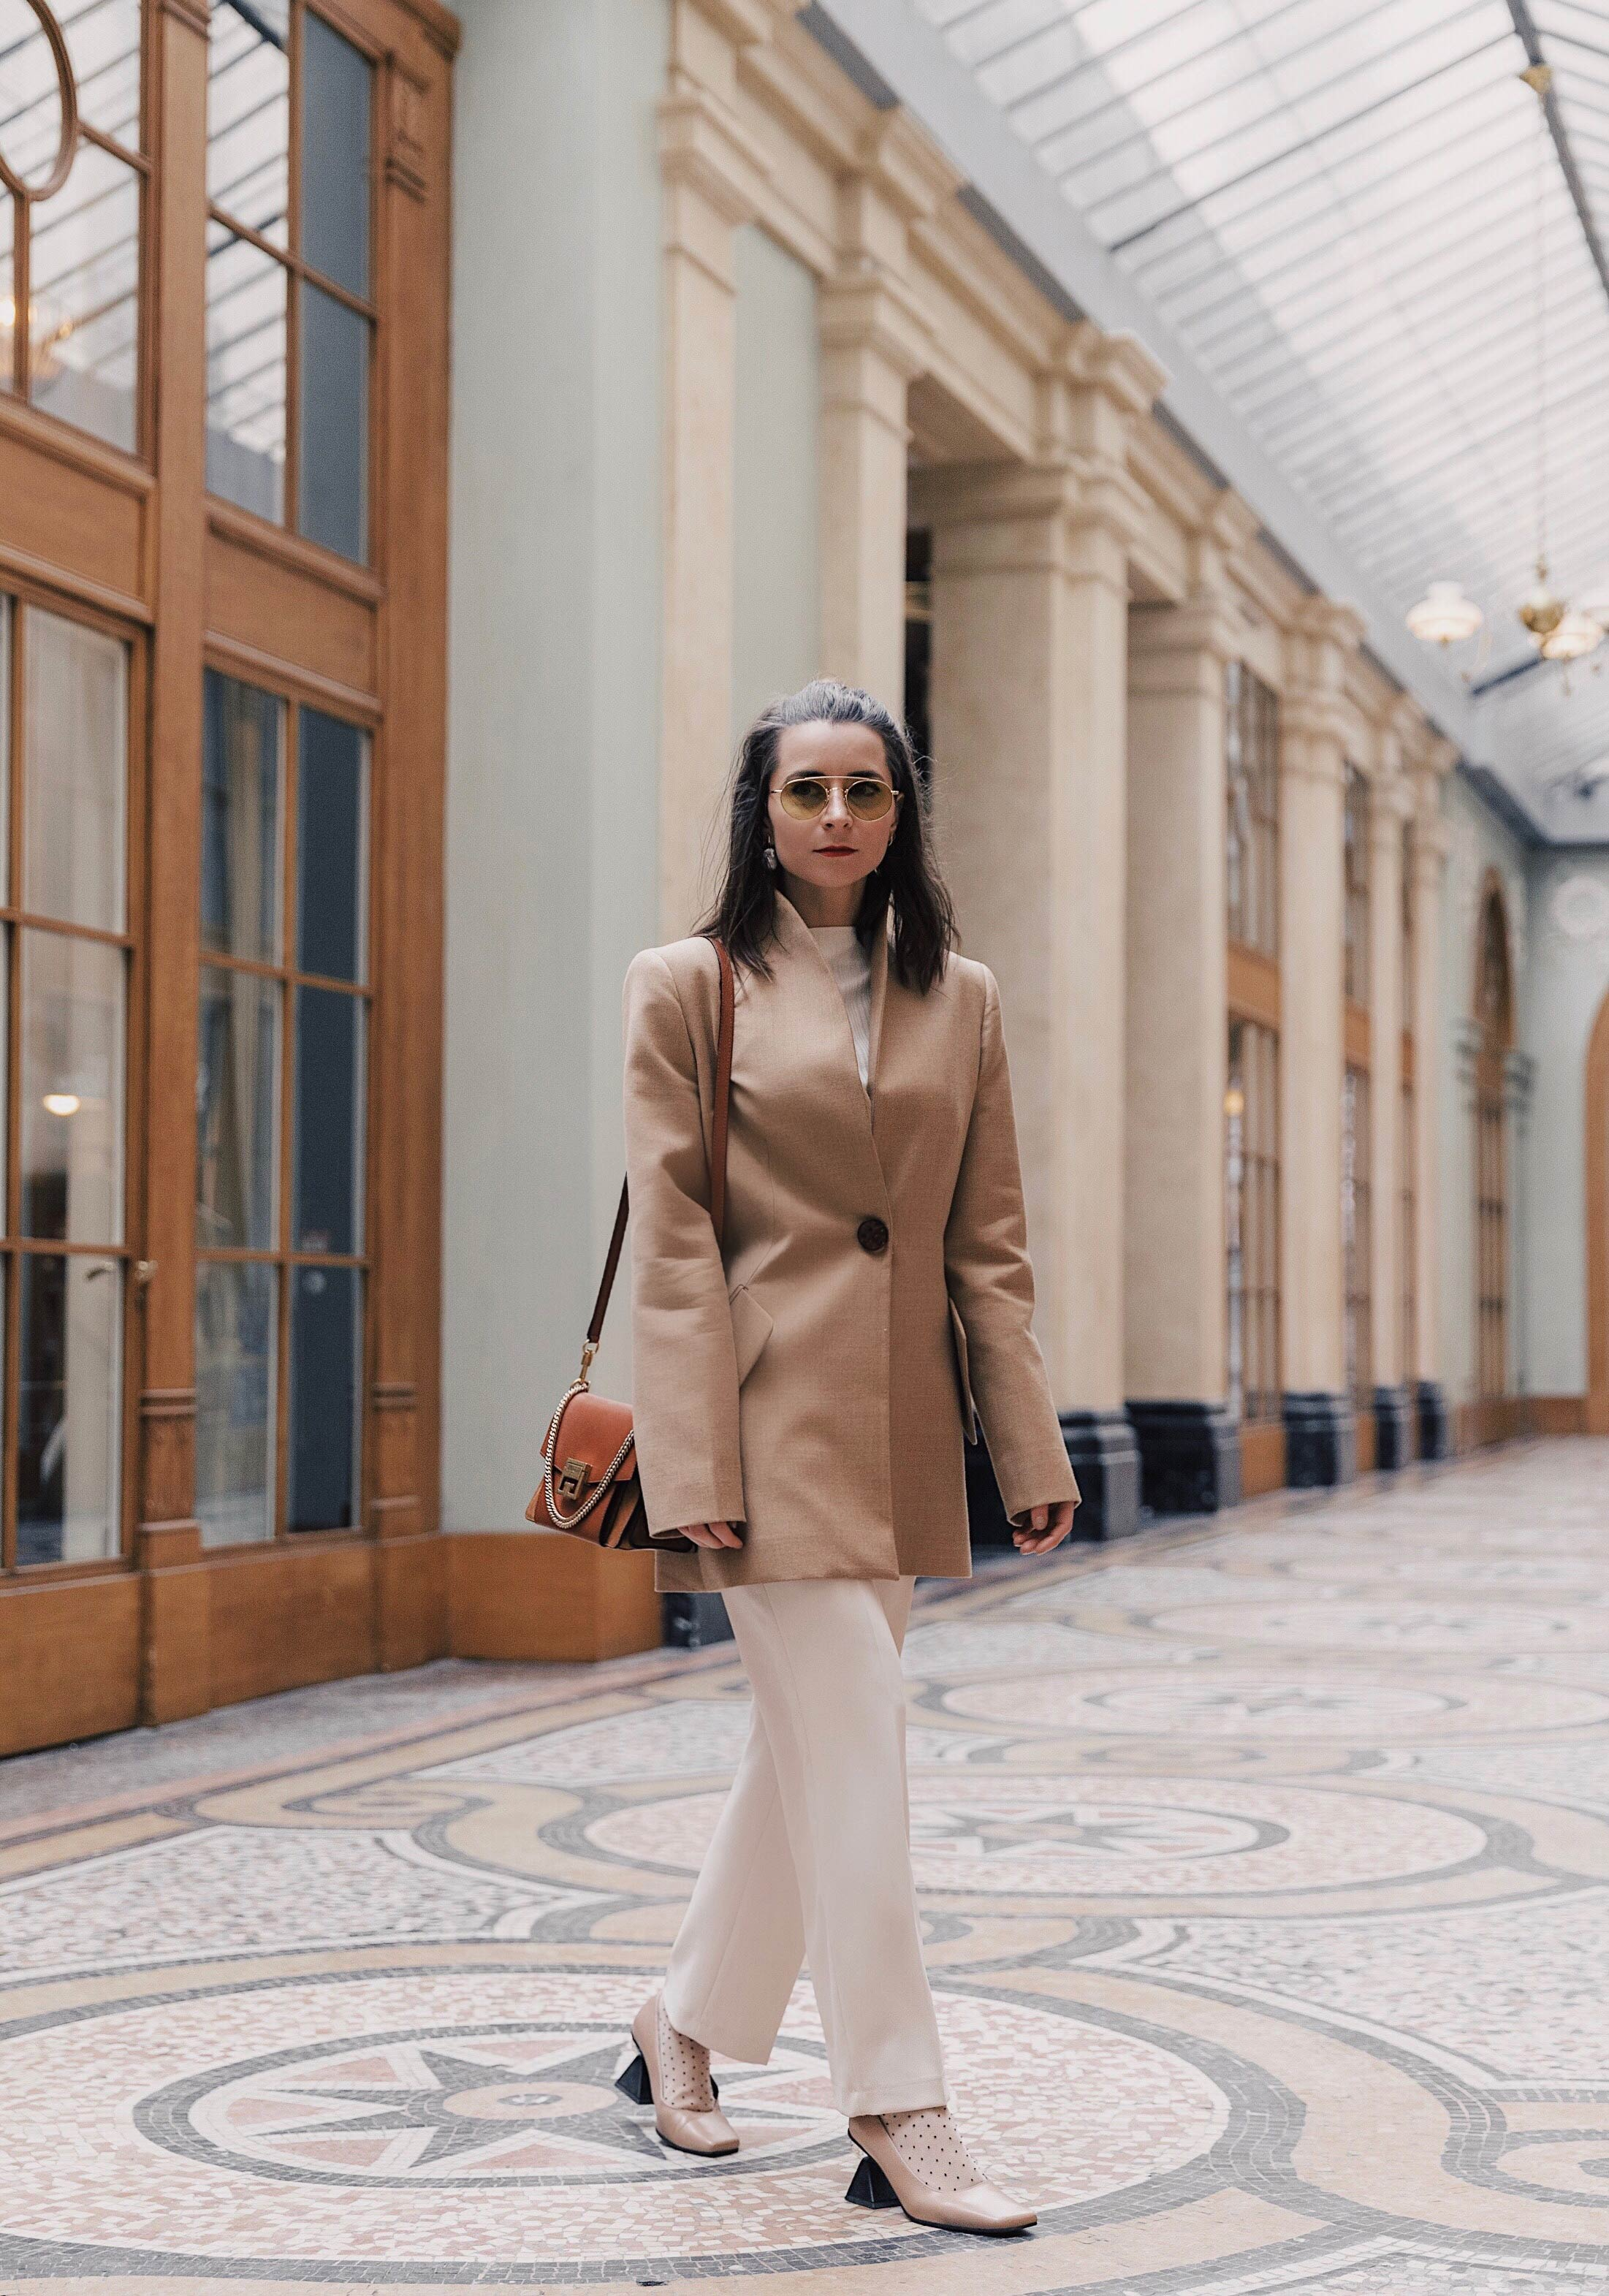 342f4d9bea4 Best Street Style Fashion Week Mars 2019 Julia Comil   French Fashion  Blogger in Los Angeles